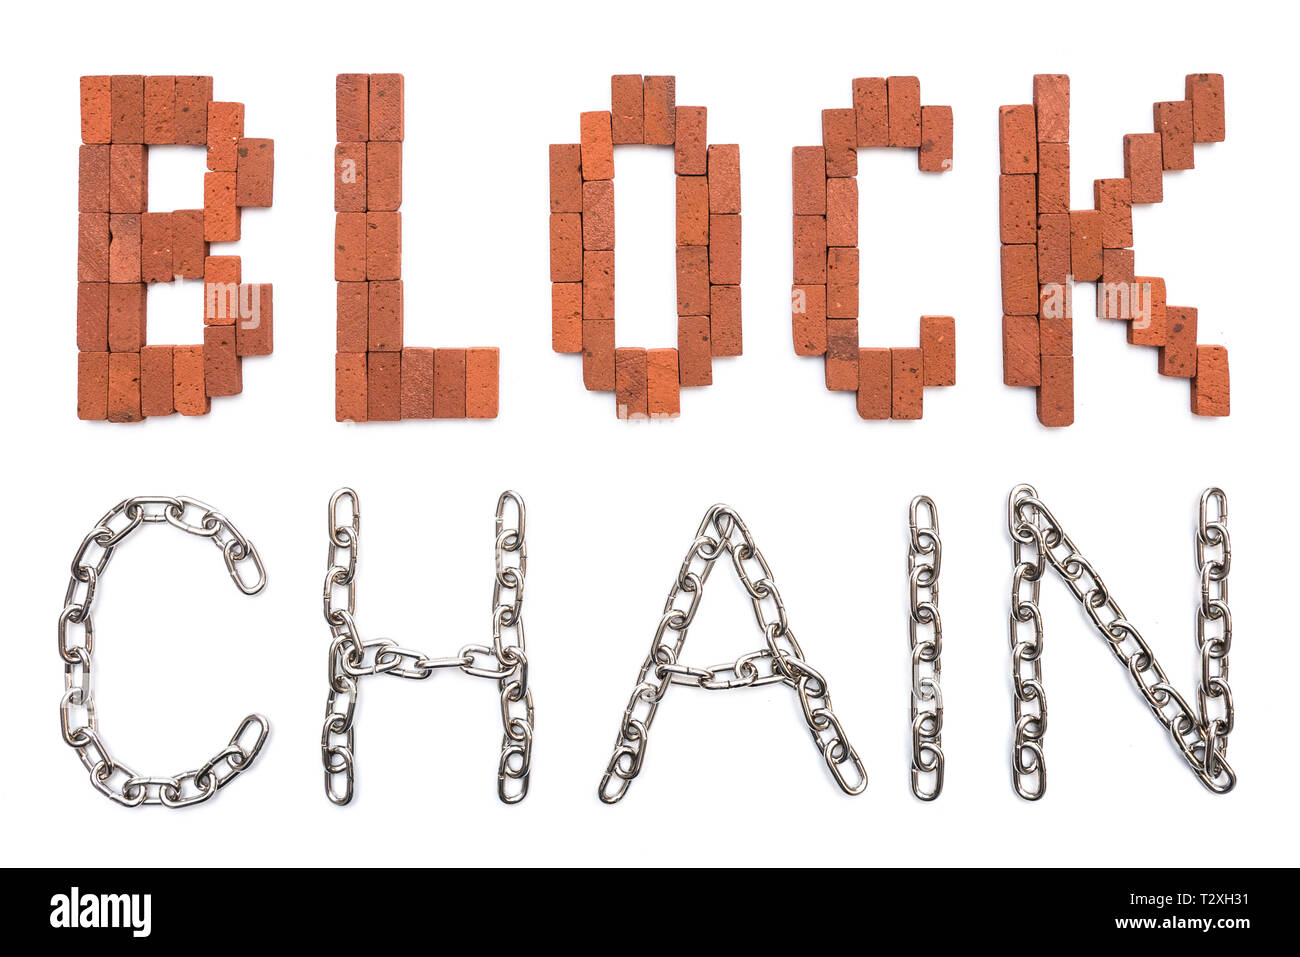 Blockchain illustration written with bricks and chains to visualize this complex digital technology - Stock Image